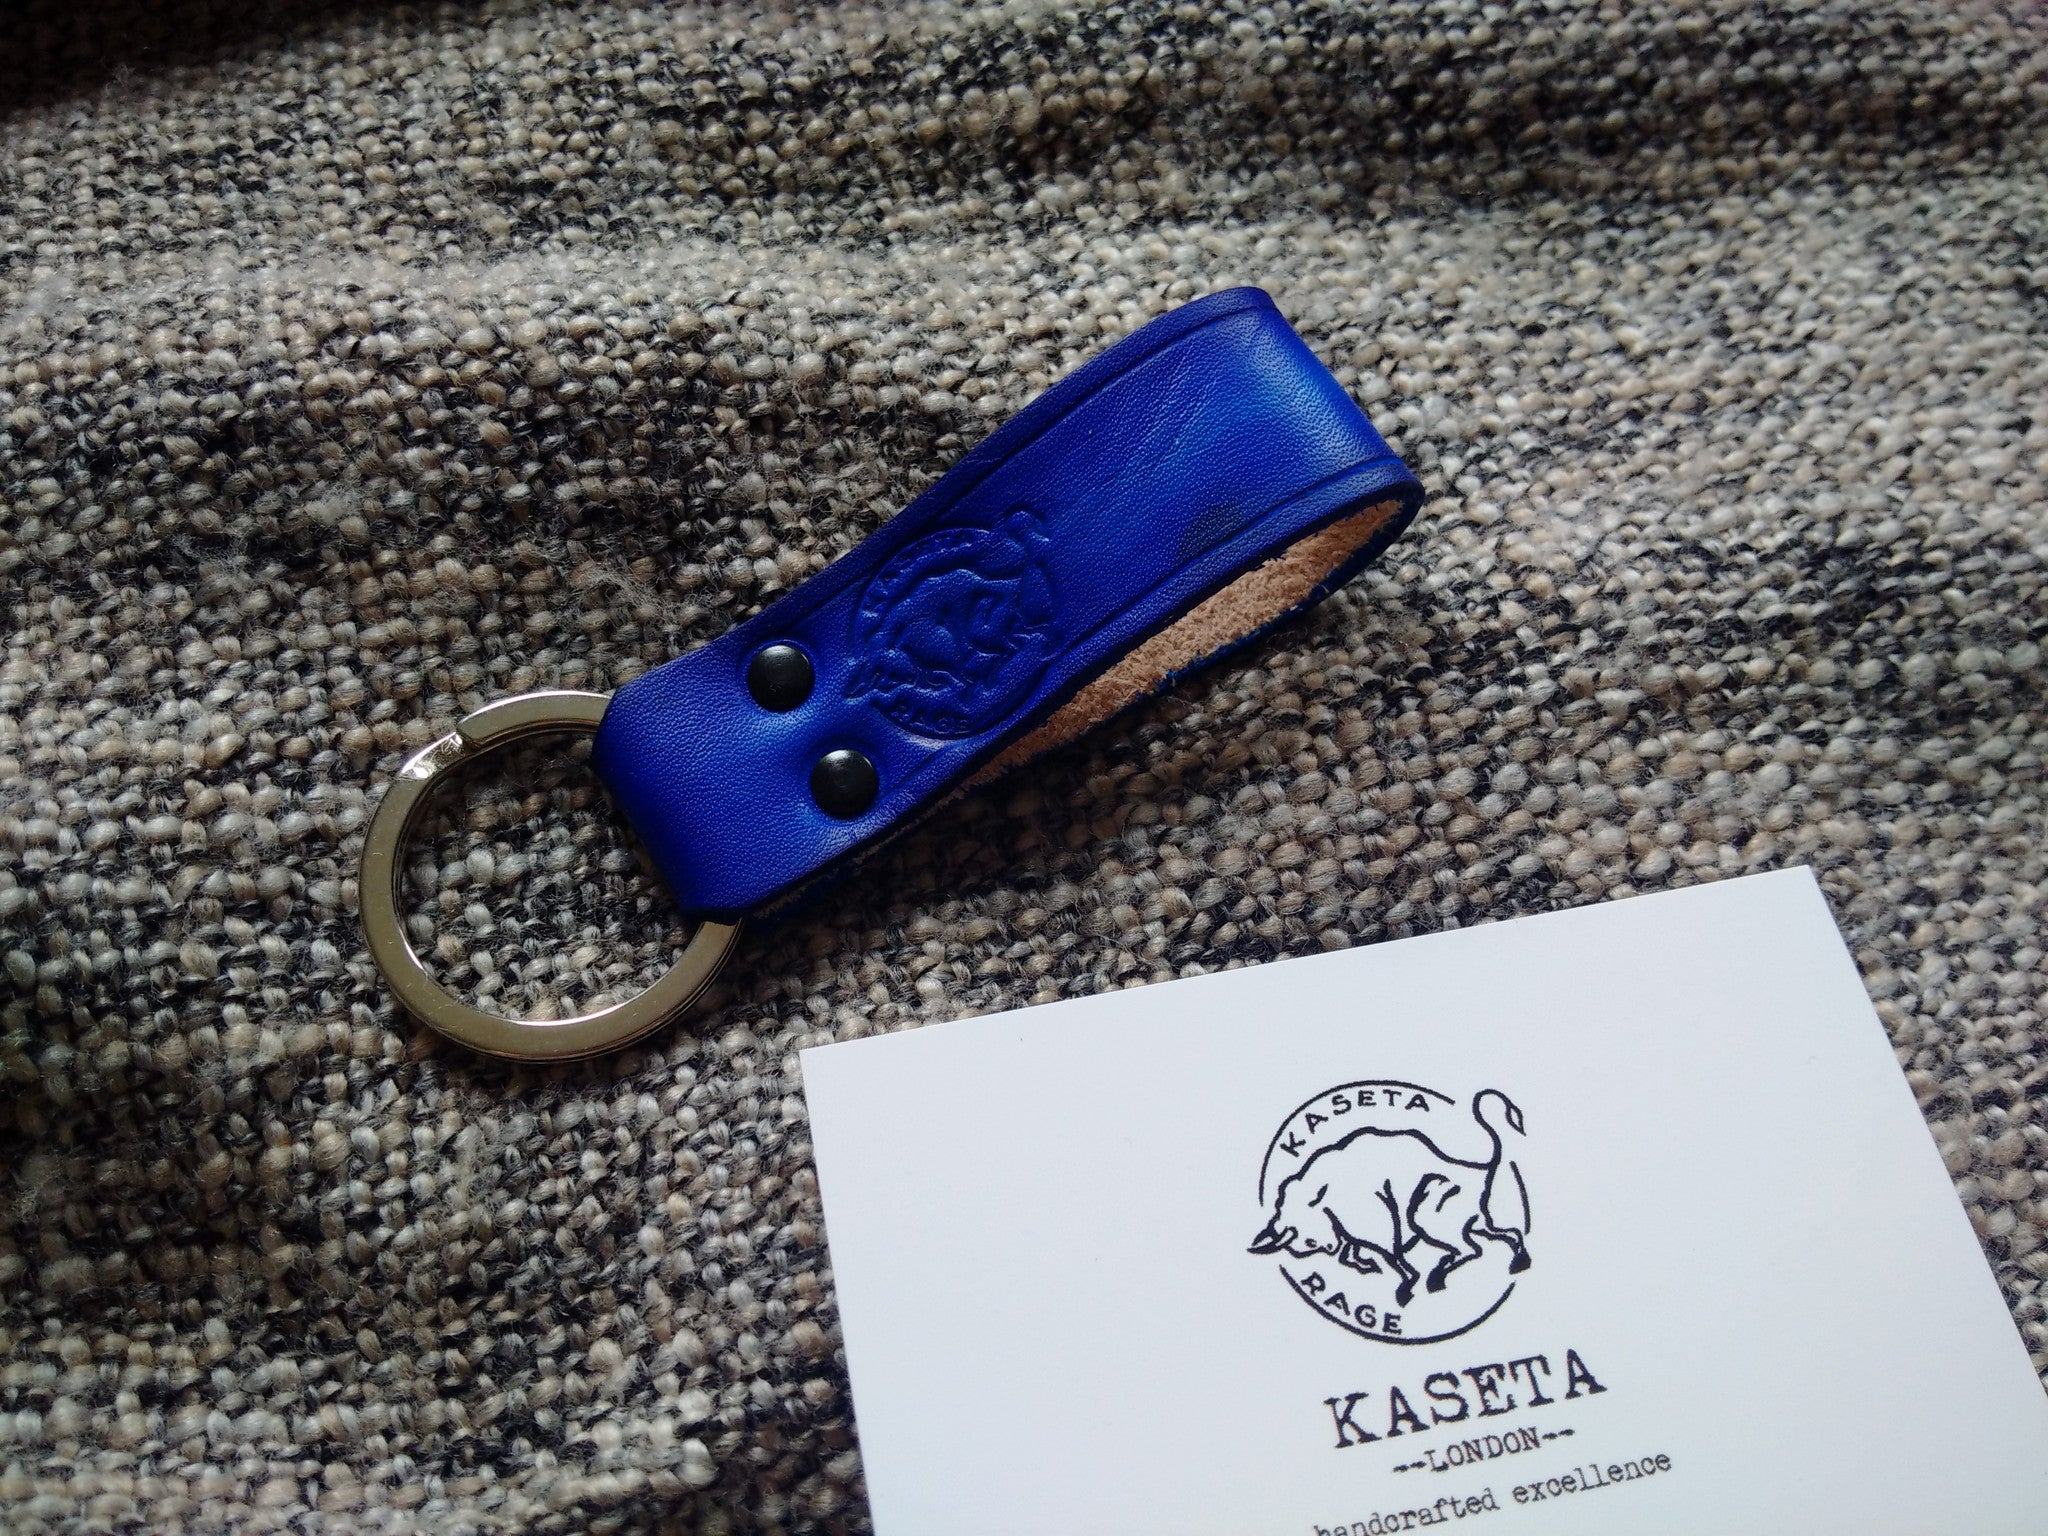 Leather Key Band 'OldNavy' - Kaseta